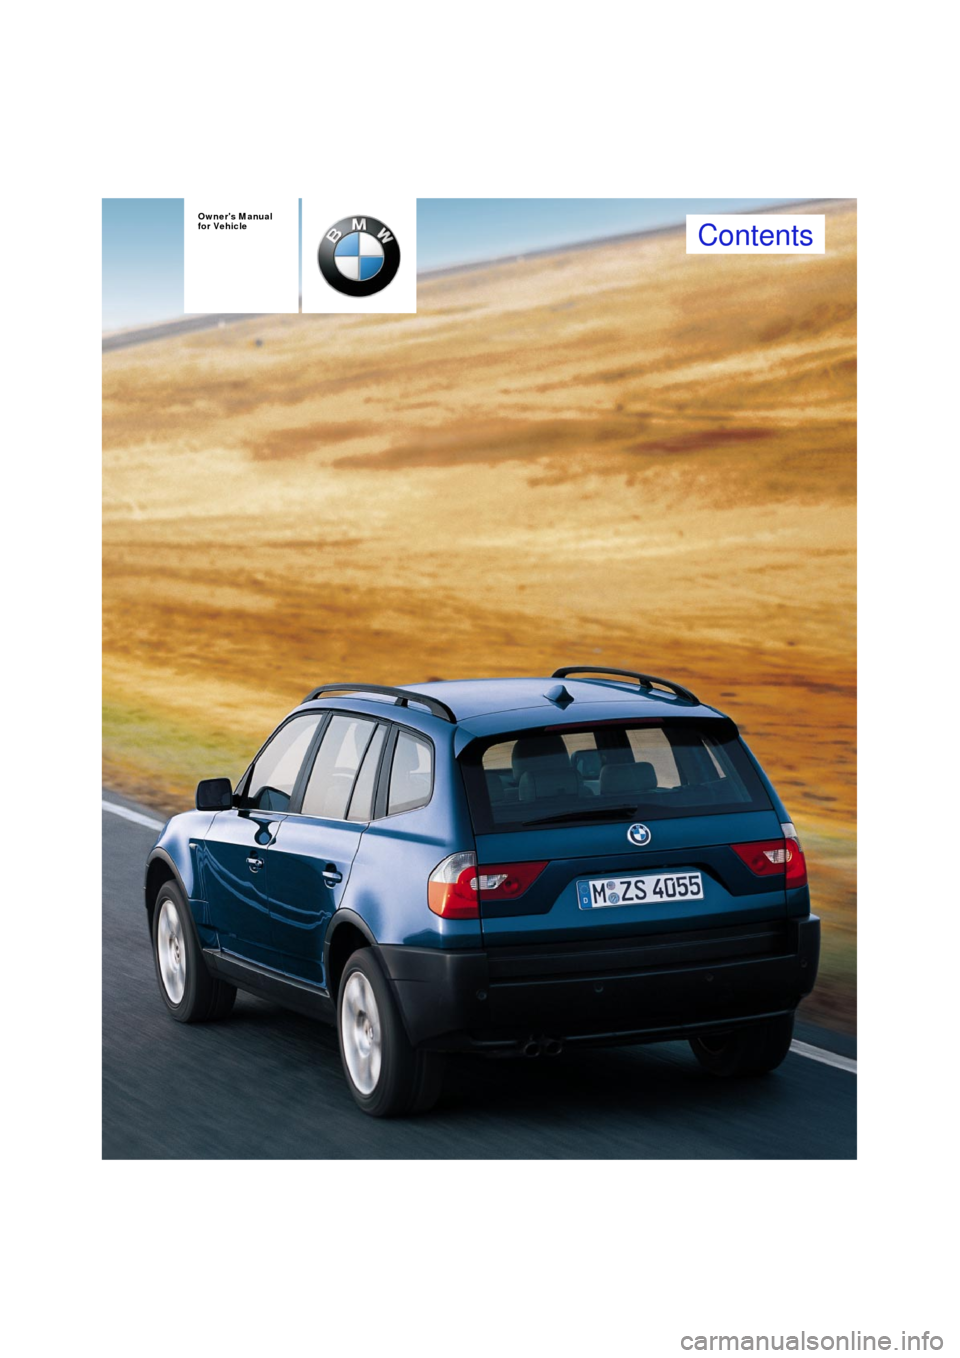 bmw x3 2 5i 2004 e83 owner 39 s manual. Black Bedroom Furniture Sets. Home Design Ideas